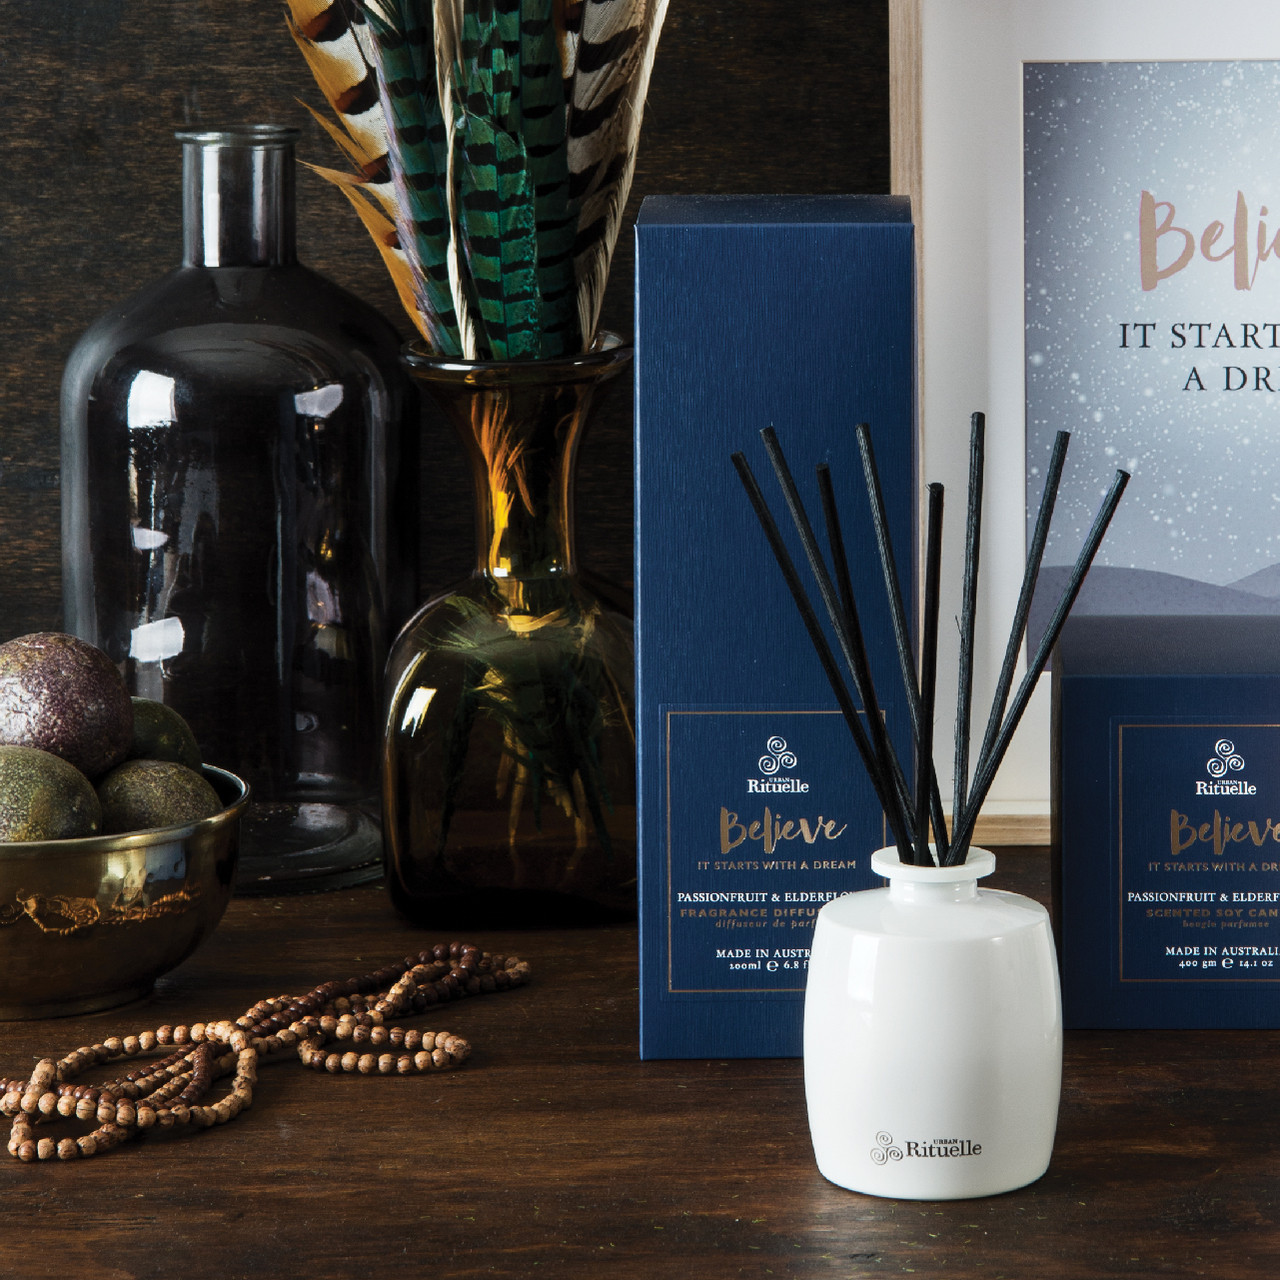 Scented Offerings - Believe - Passionfruit & Elderflower - Fragrance Diffuser Set - Urban Rituelle